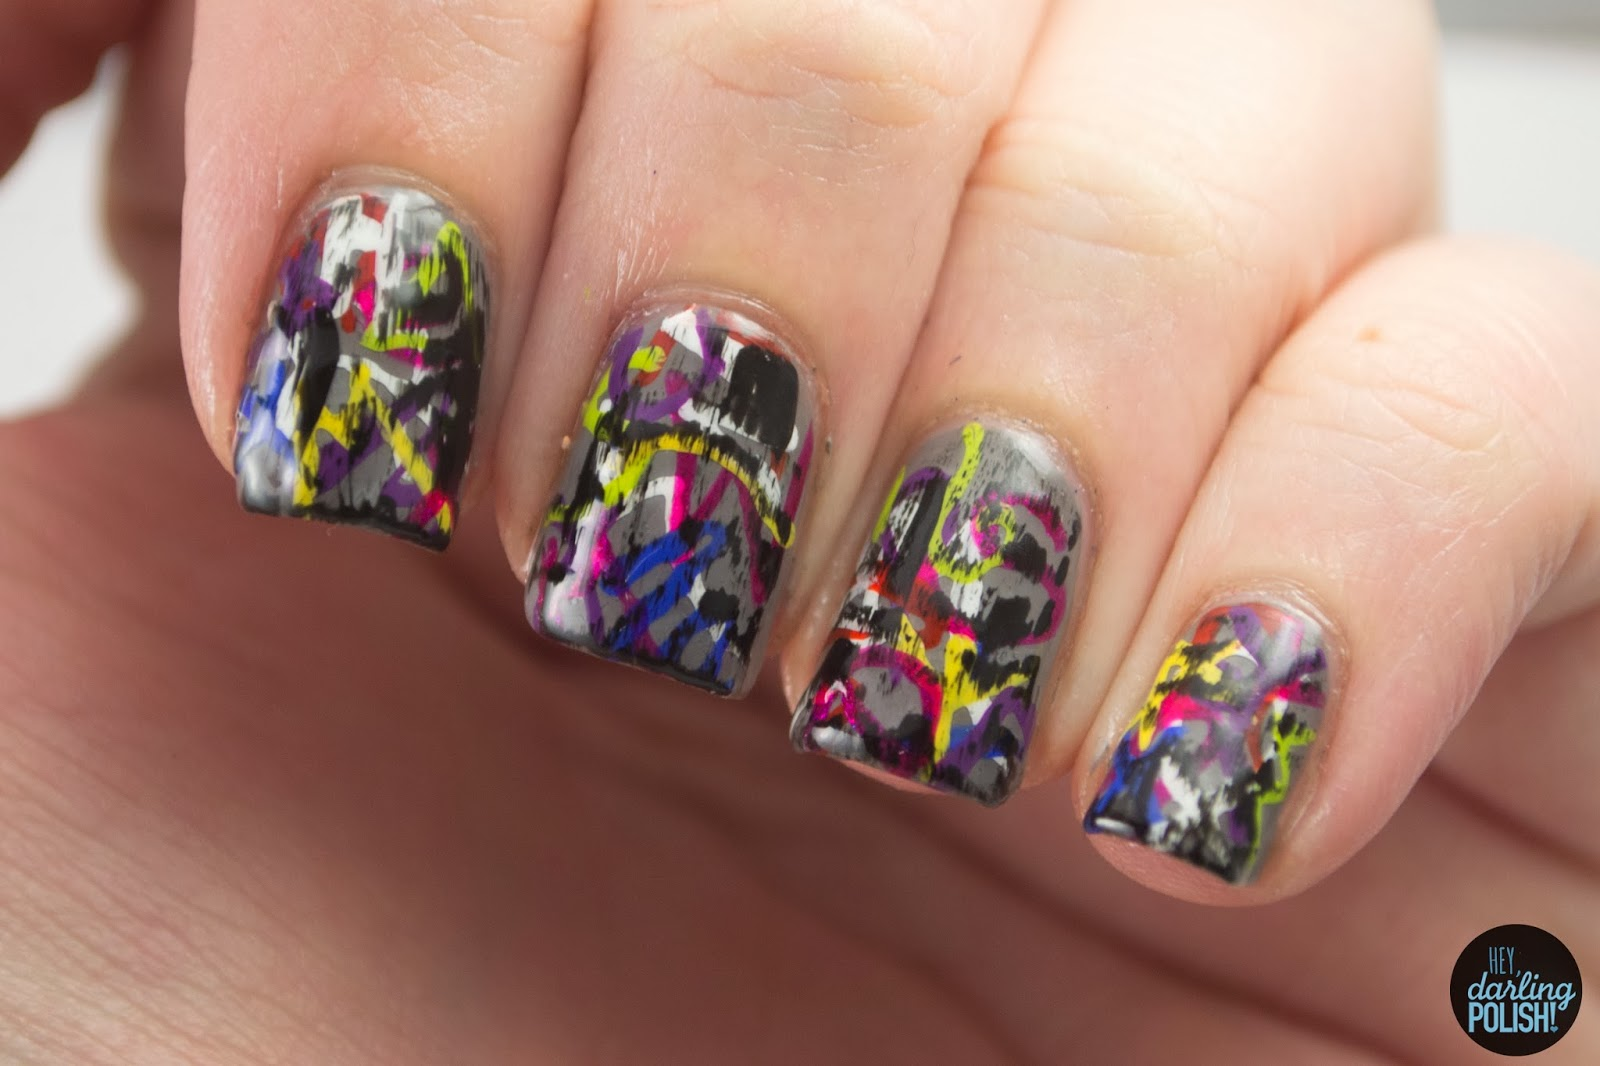 nails, nail art, nail polish, polish, graffiti, nail art a go go, hey darling polish, grunge